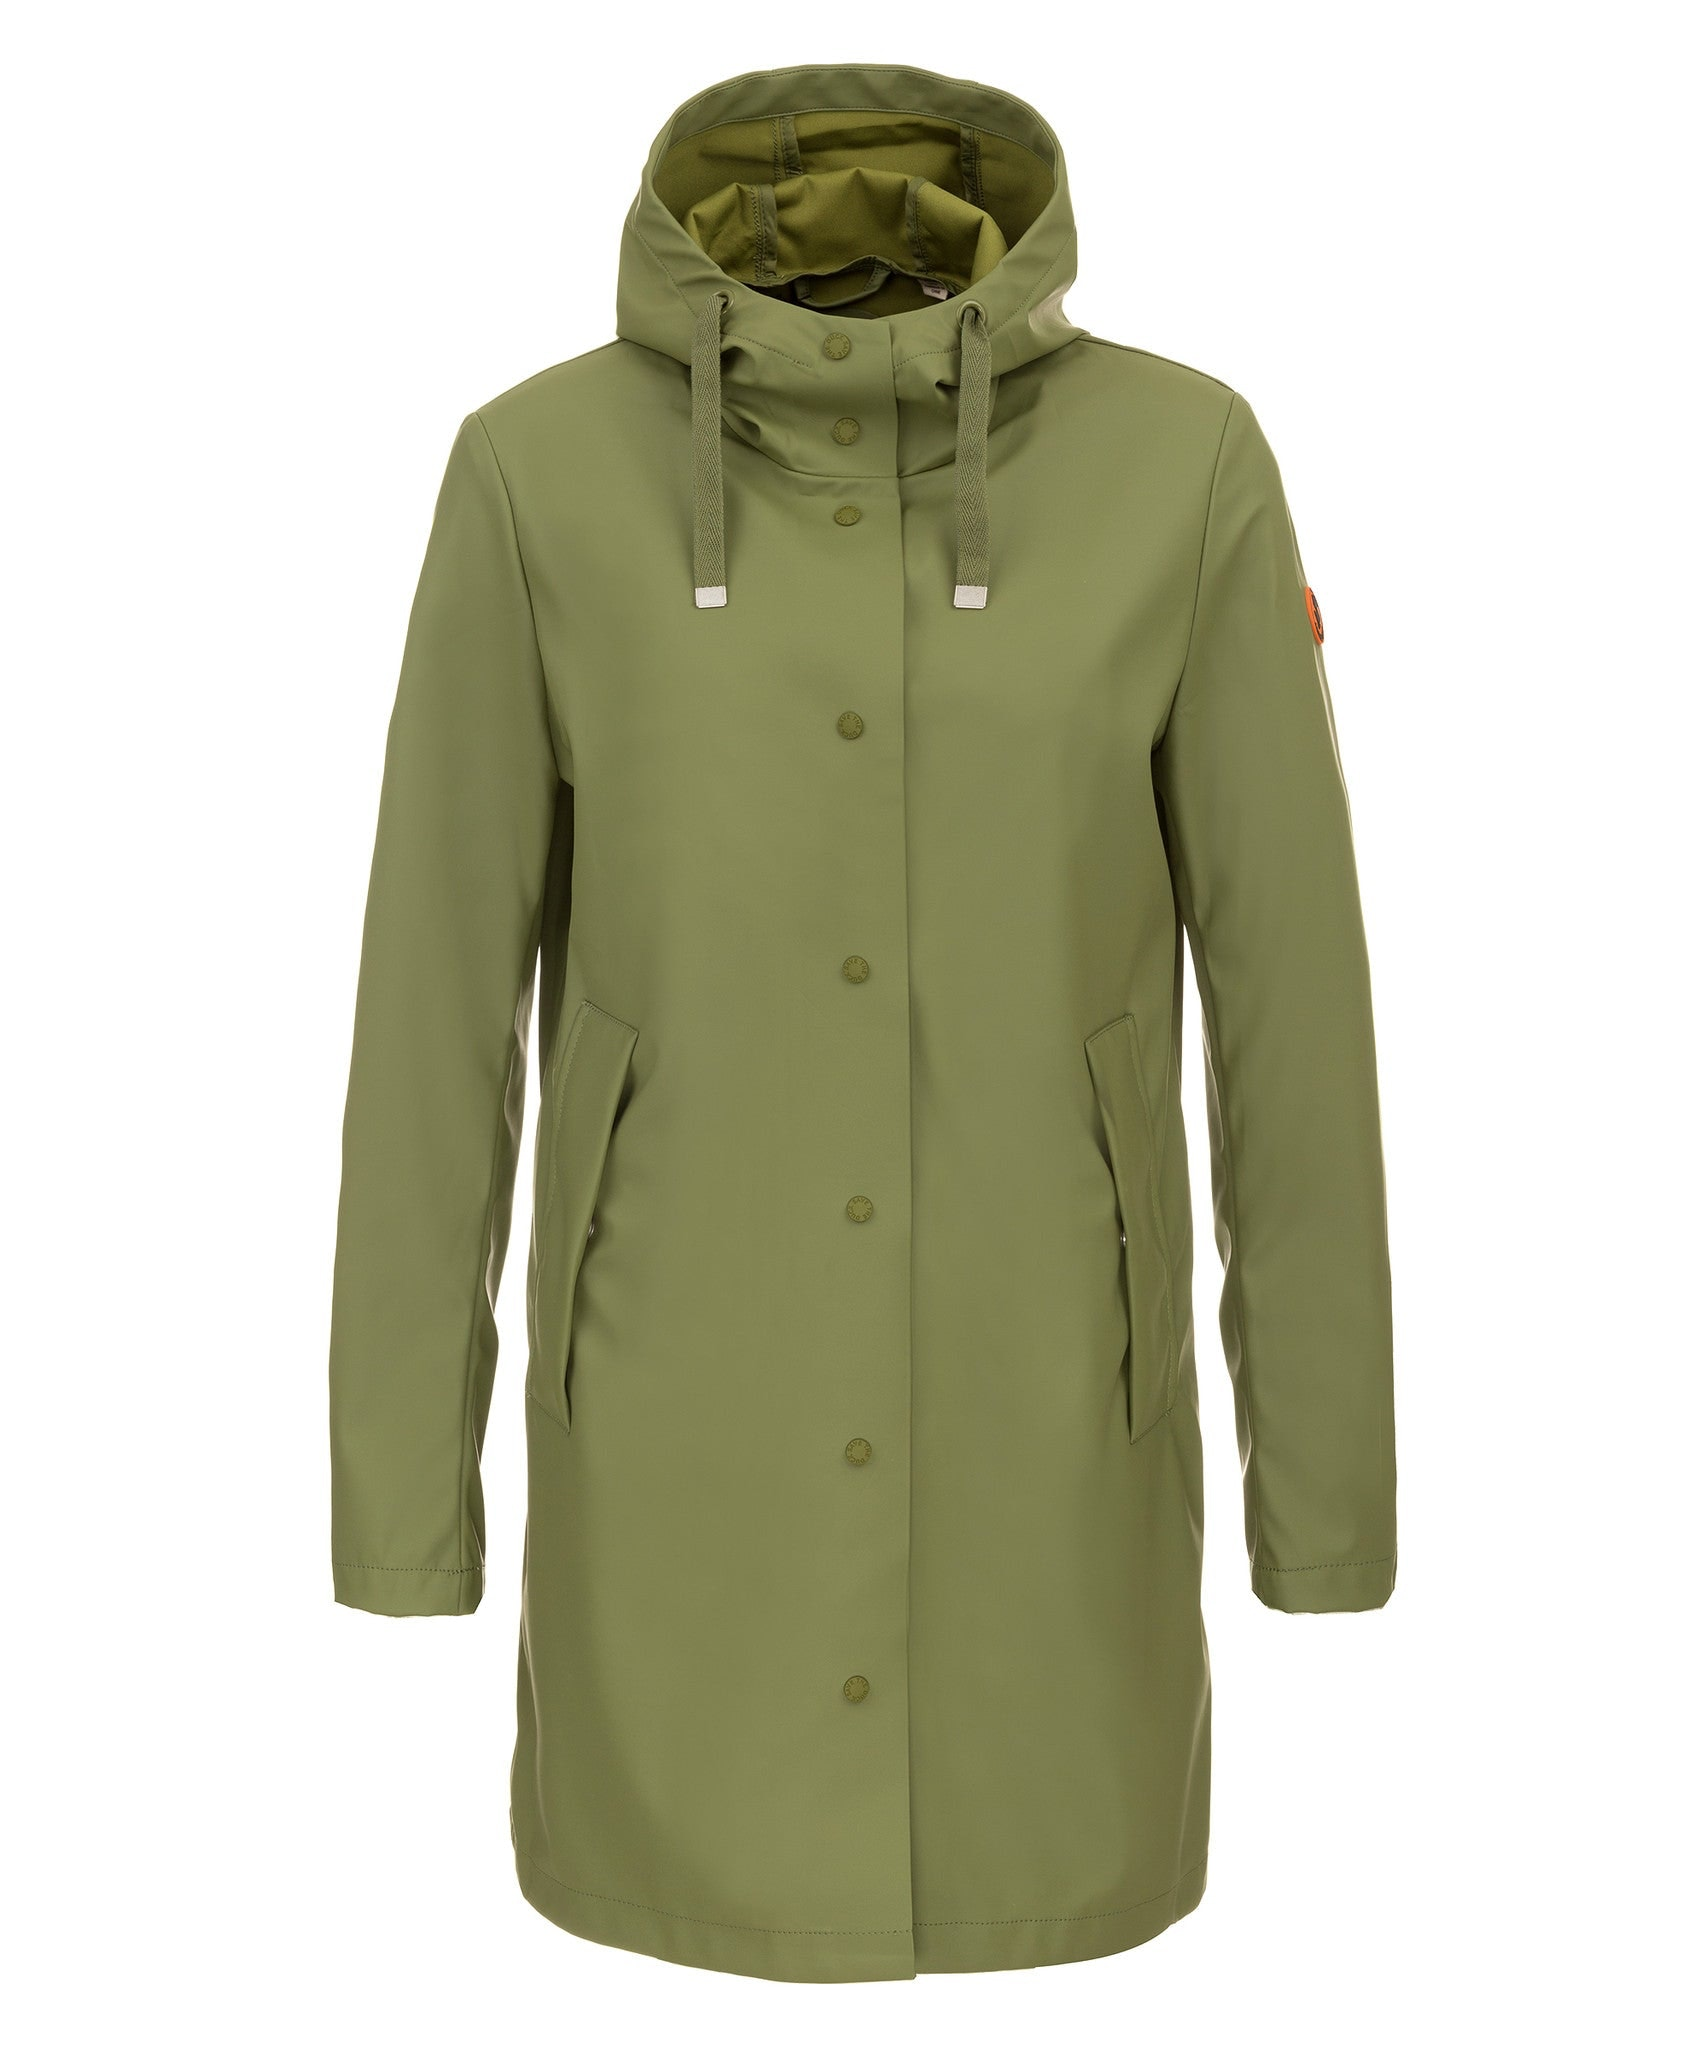 Save The Duck Women's Hooded Coat in Leaf Green – Save the Duck